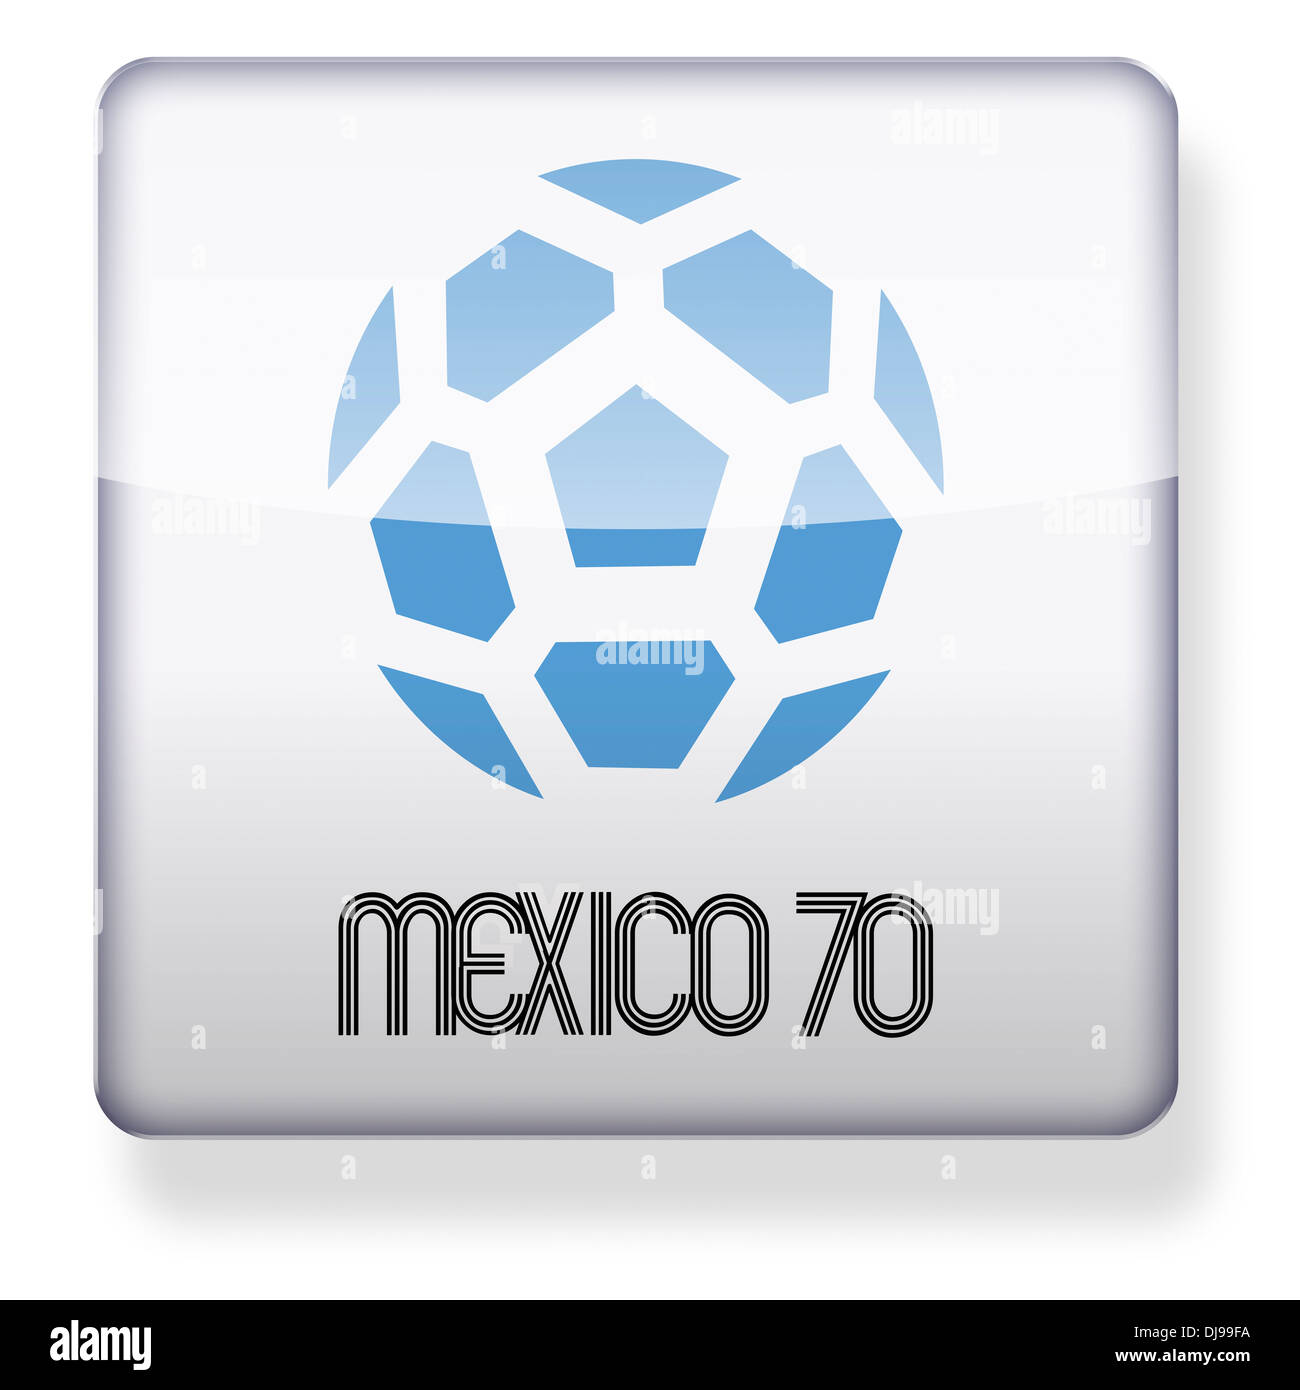 Mexico 1970 World Cup logo as an app icon. Clipping path included. - Stock Image